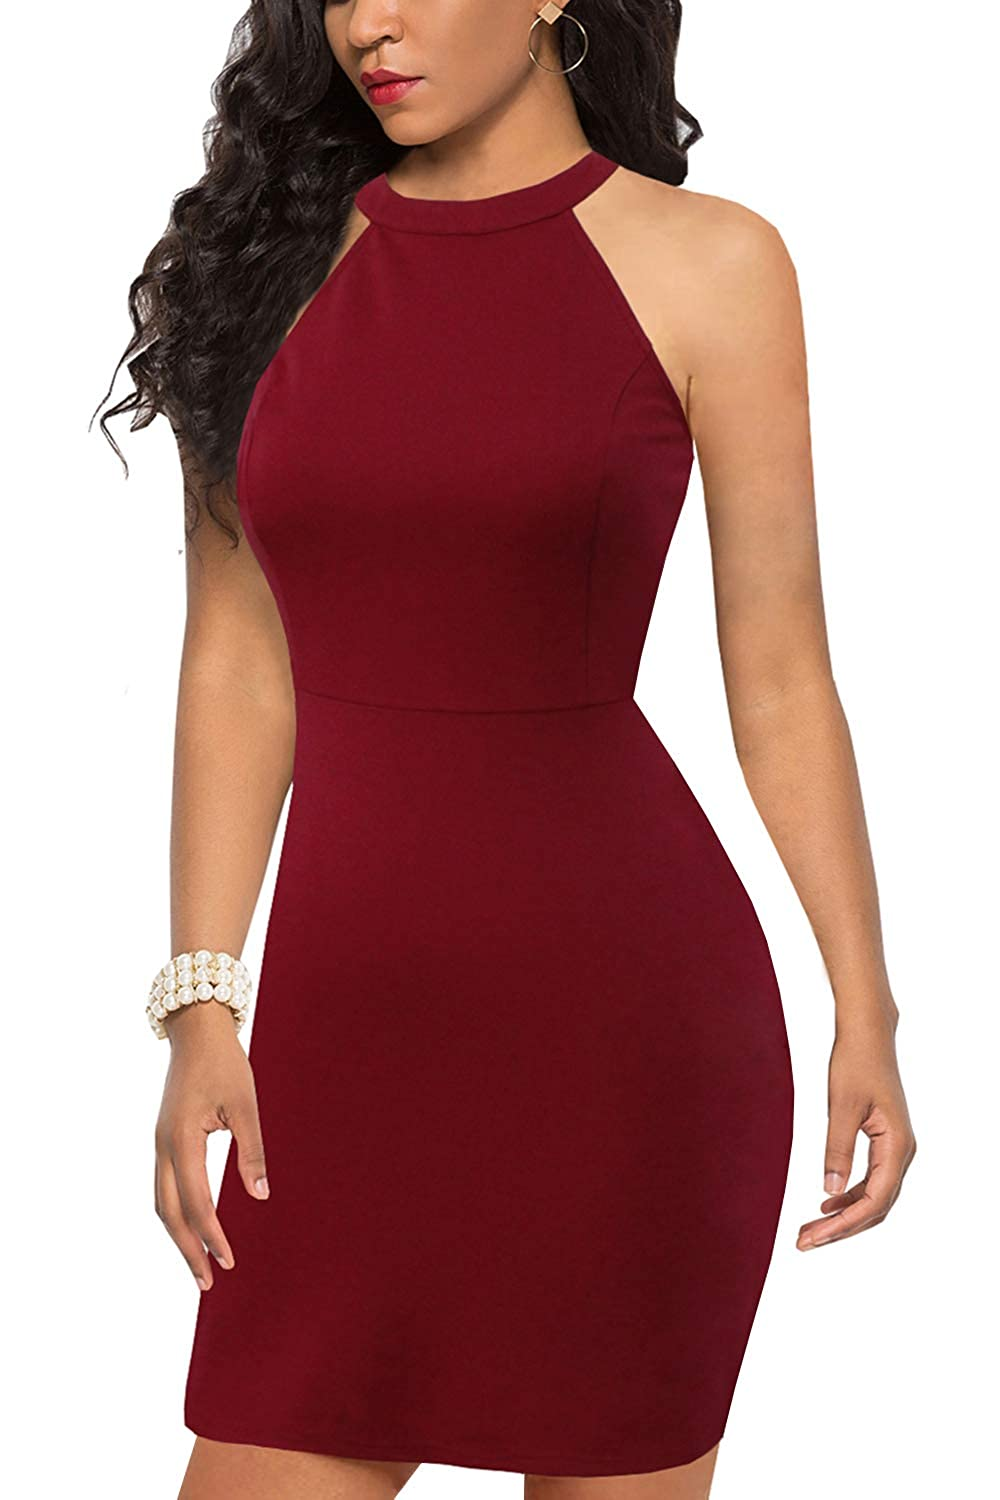 8c0d80aa6a26 Liyinxi Women s Sexy Halter Neck Sheath Bodycon Sleeveless Backless  Cocktail Party Wrap Mini Lace Pencil Dress at Amazon Women s Clothing store